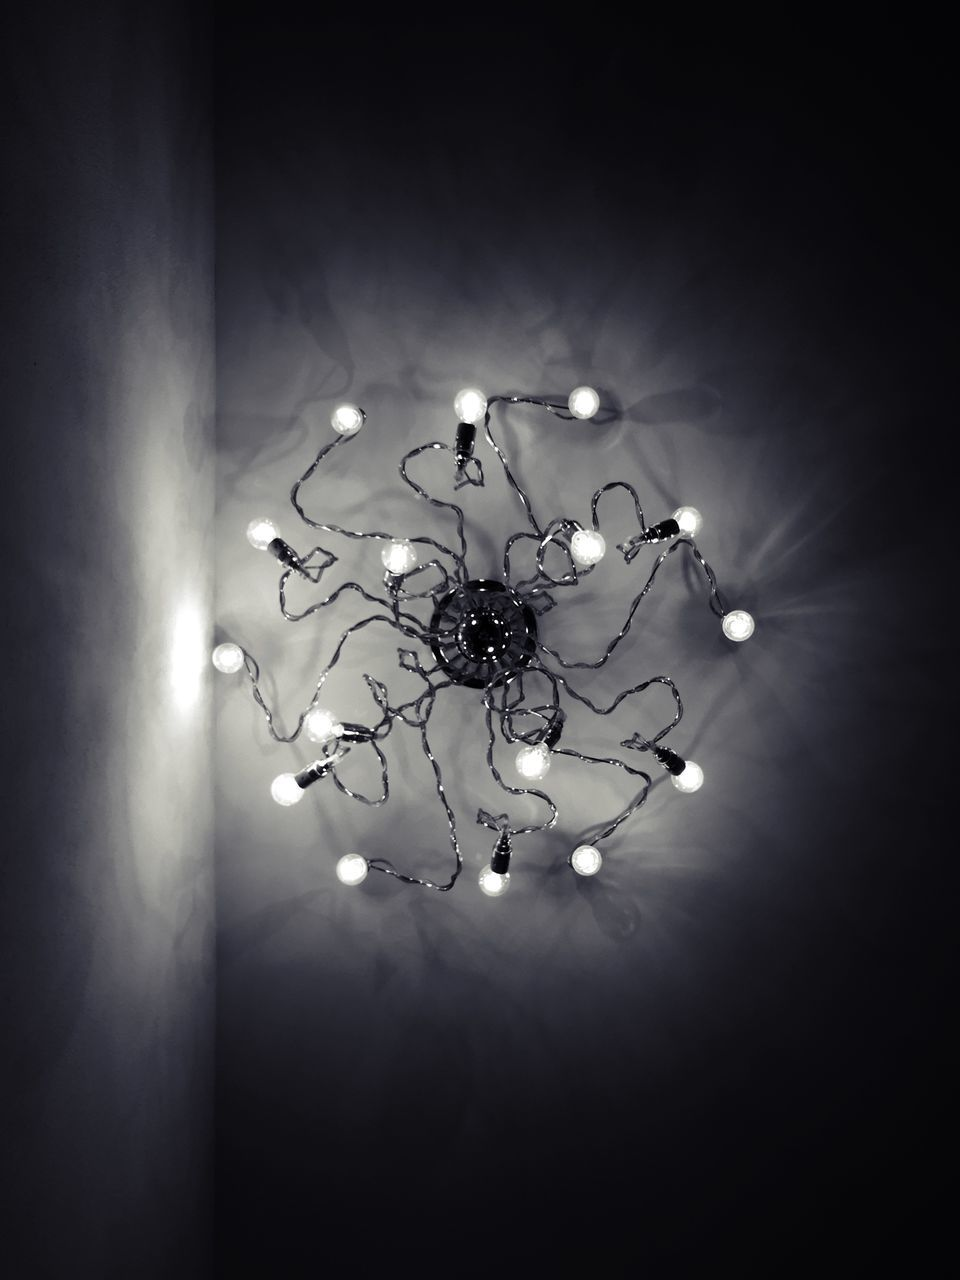 Directly Below Shot Of Hanging Light At Ceiling